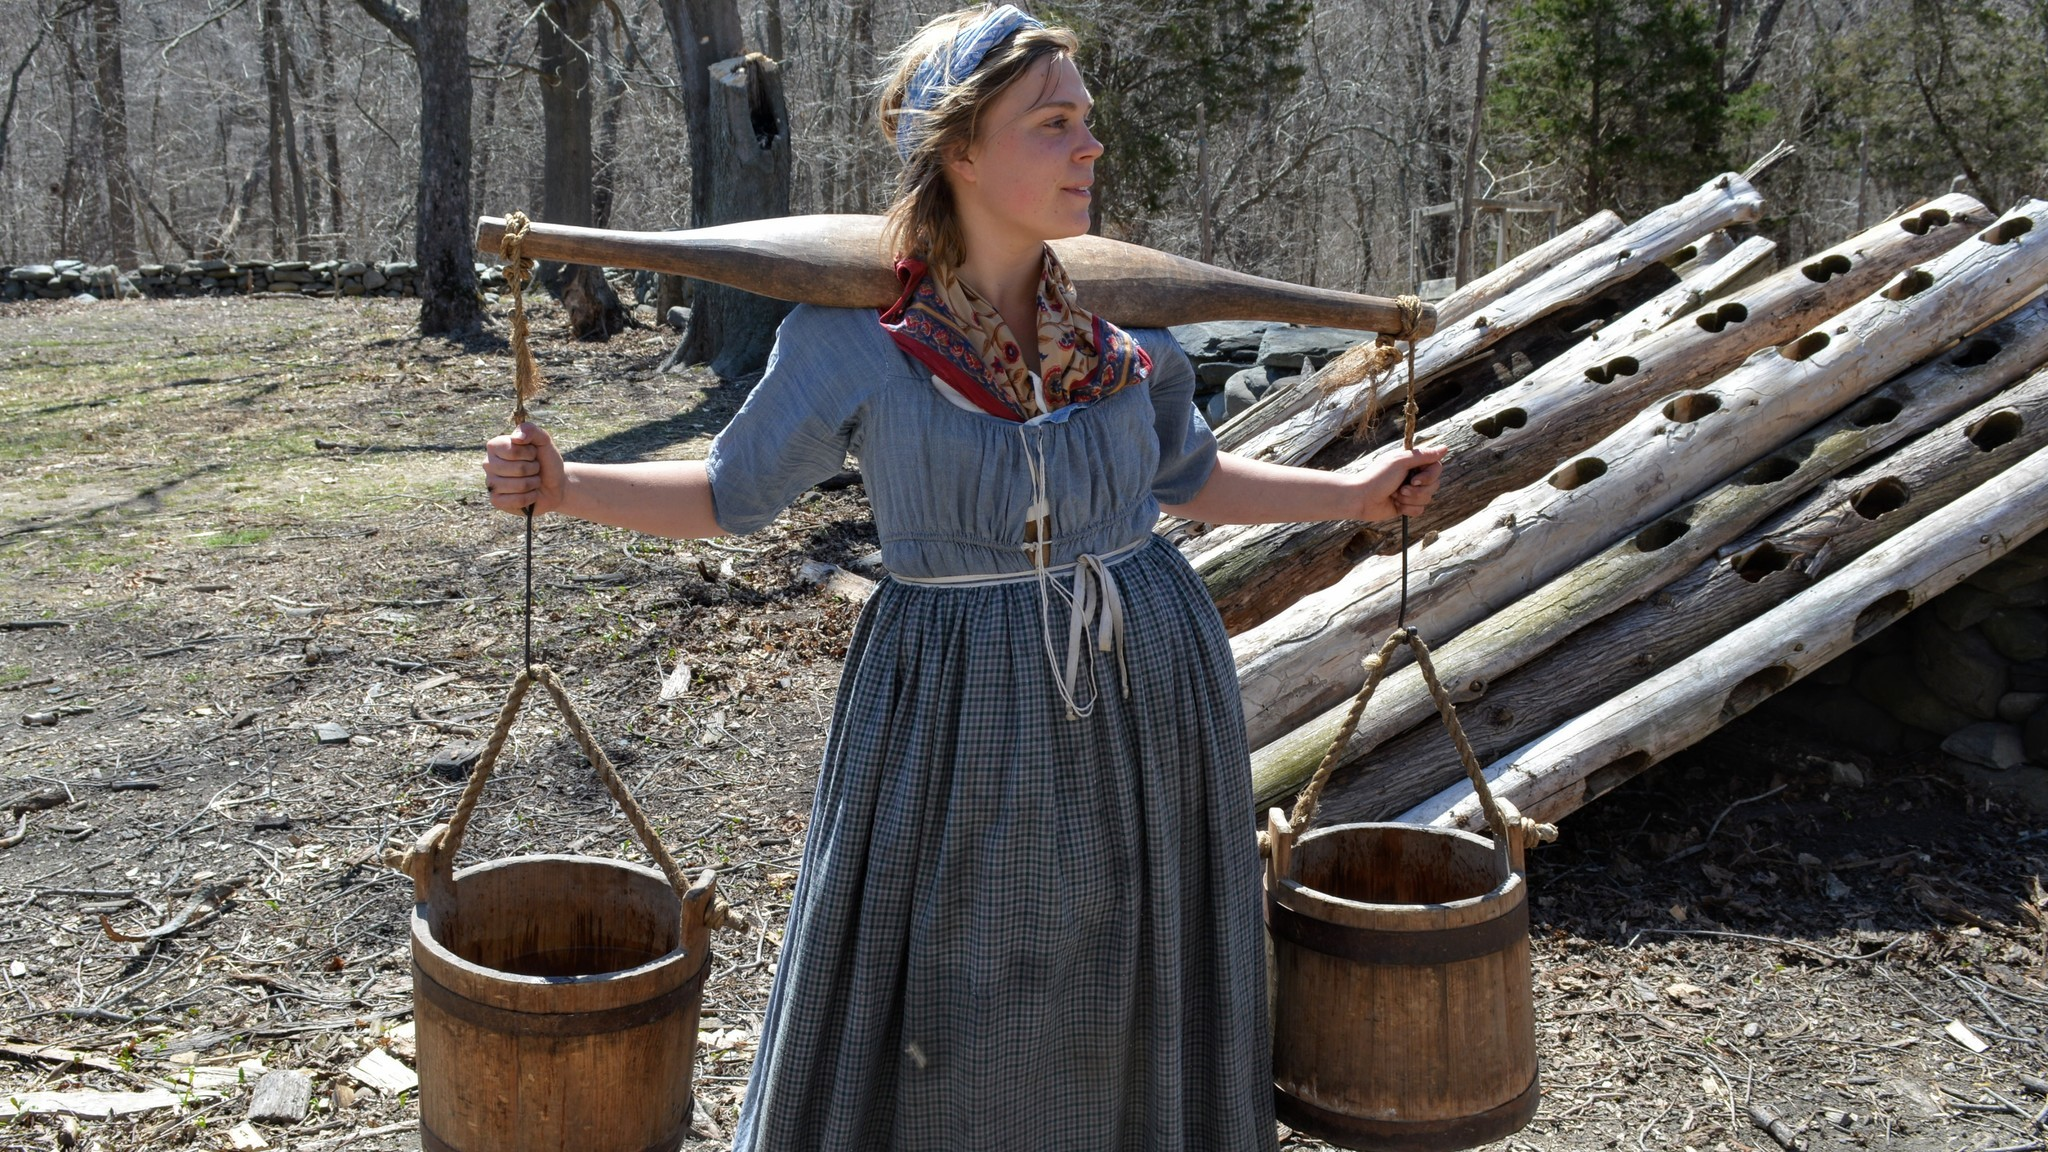 Docent at Coggeshall Farm Museum demonstrates how a yoke would be shouldered to ease the burden of carrying heavy wooden buckets.